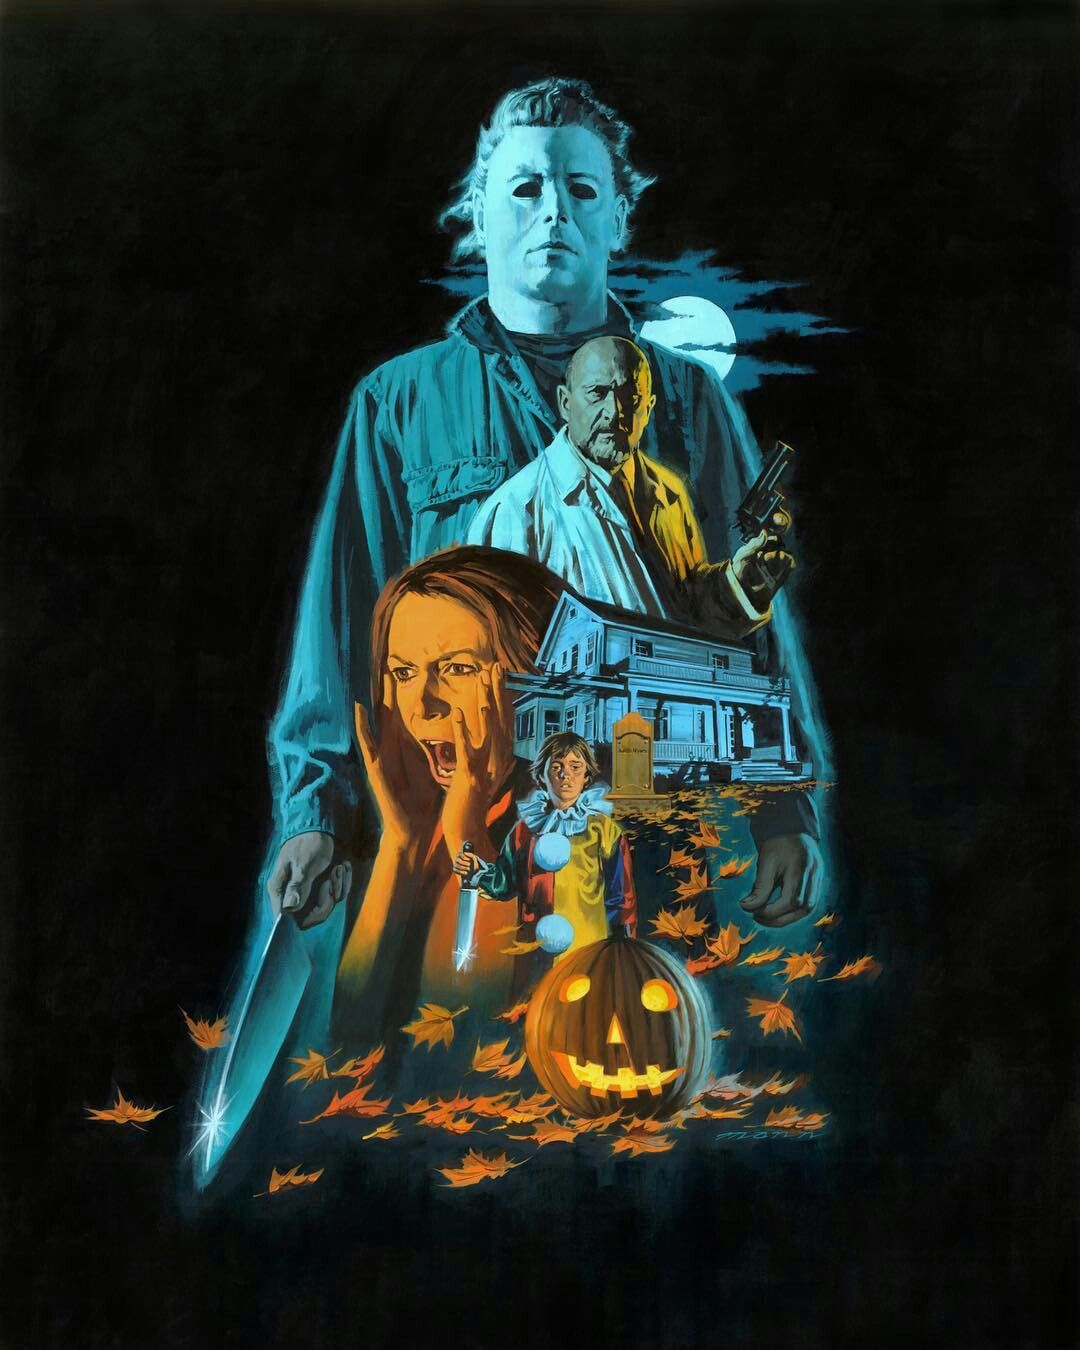 Michael Myers / Halloween Halloween movie poster